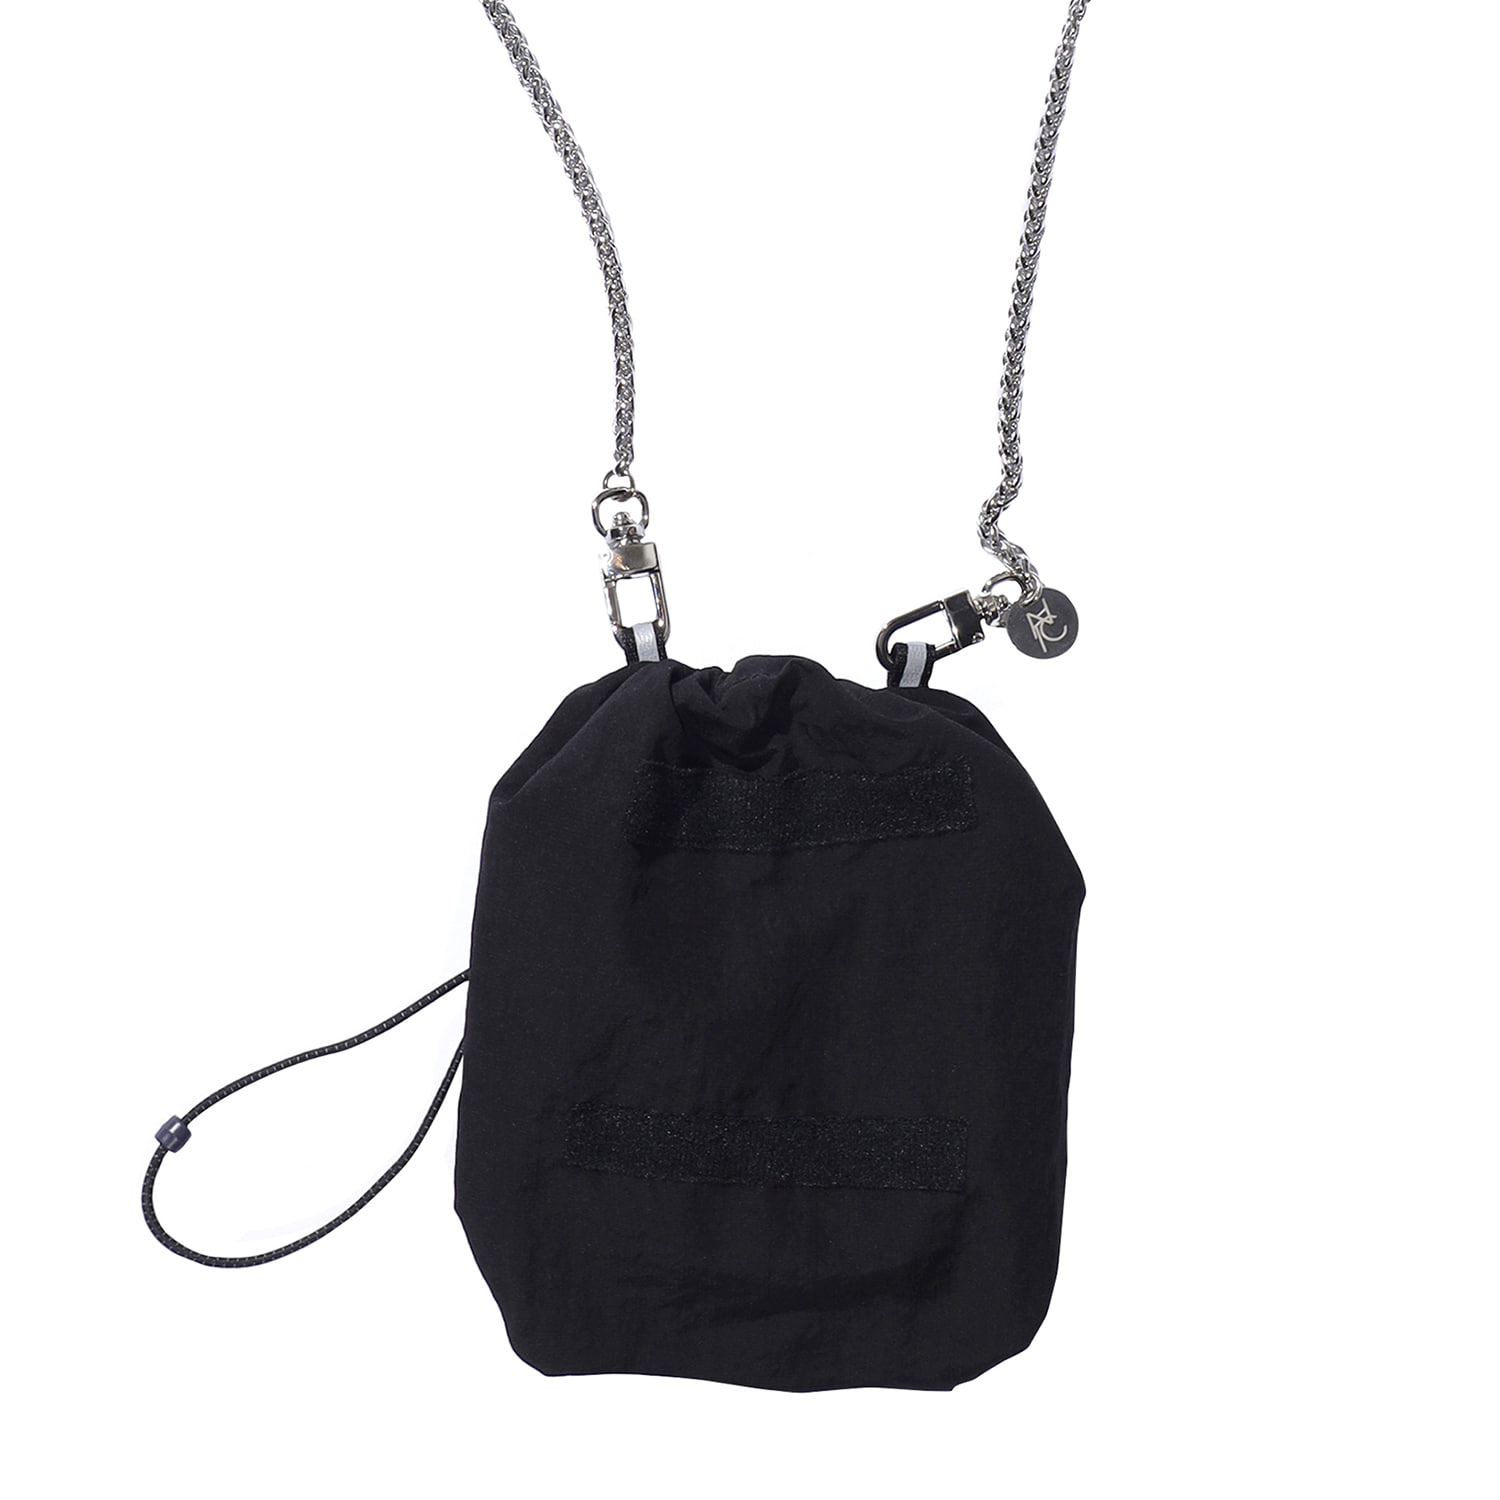 SYMBOL LOGO String Bag (black)